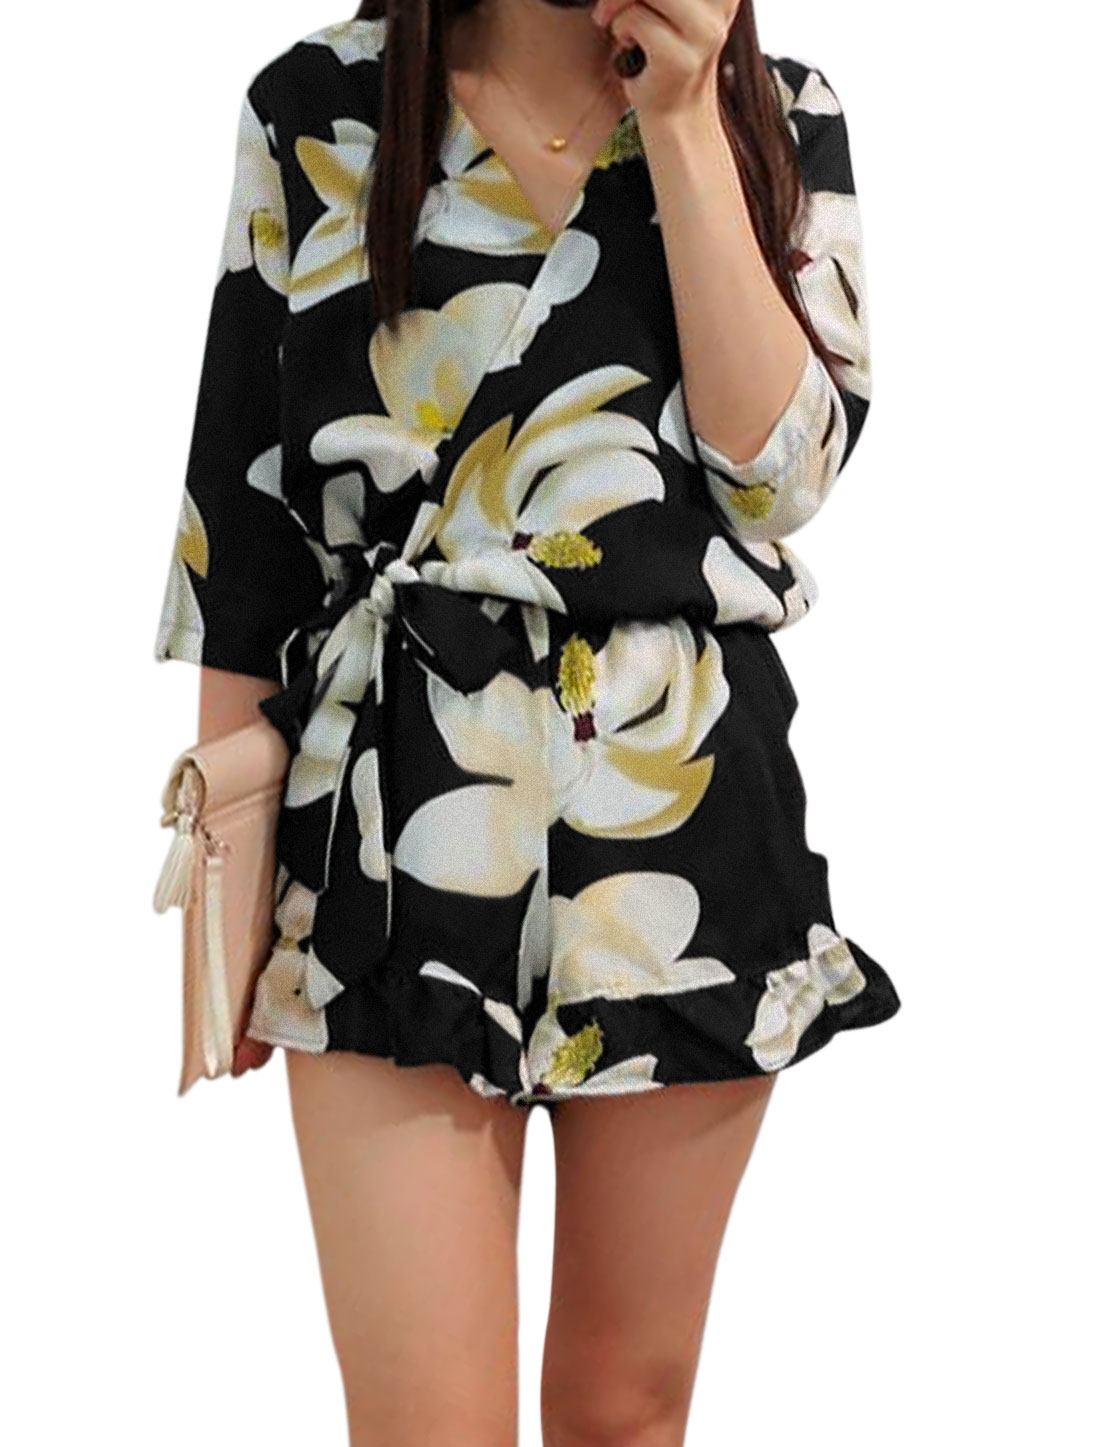 Women Crossover V Neck Floral Prints Casual Romper Beige Black S